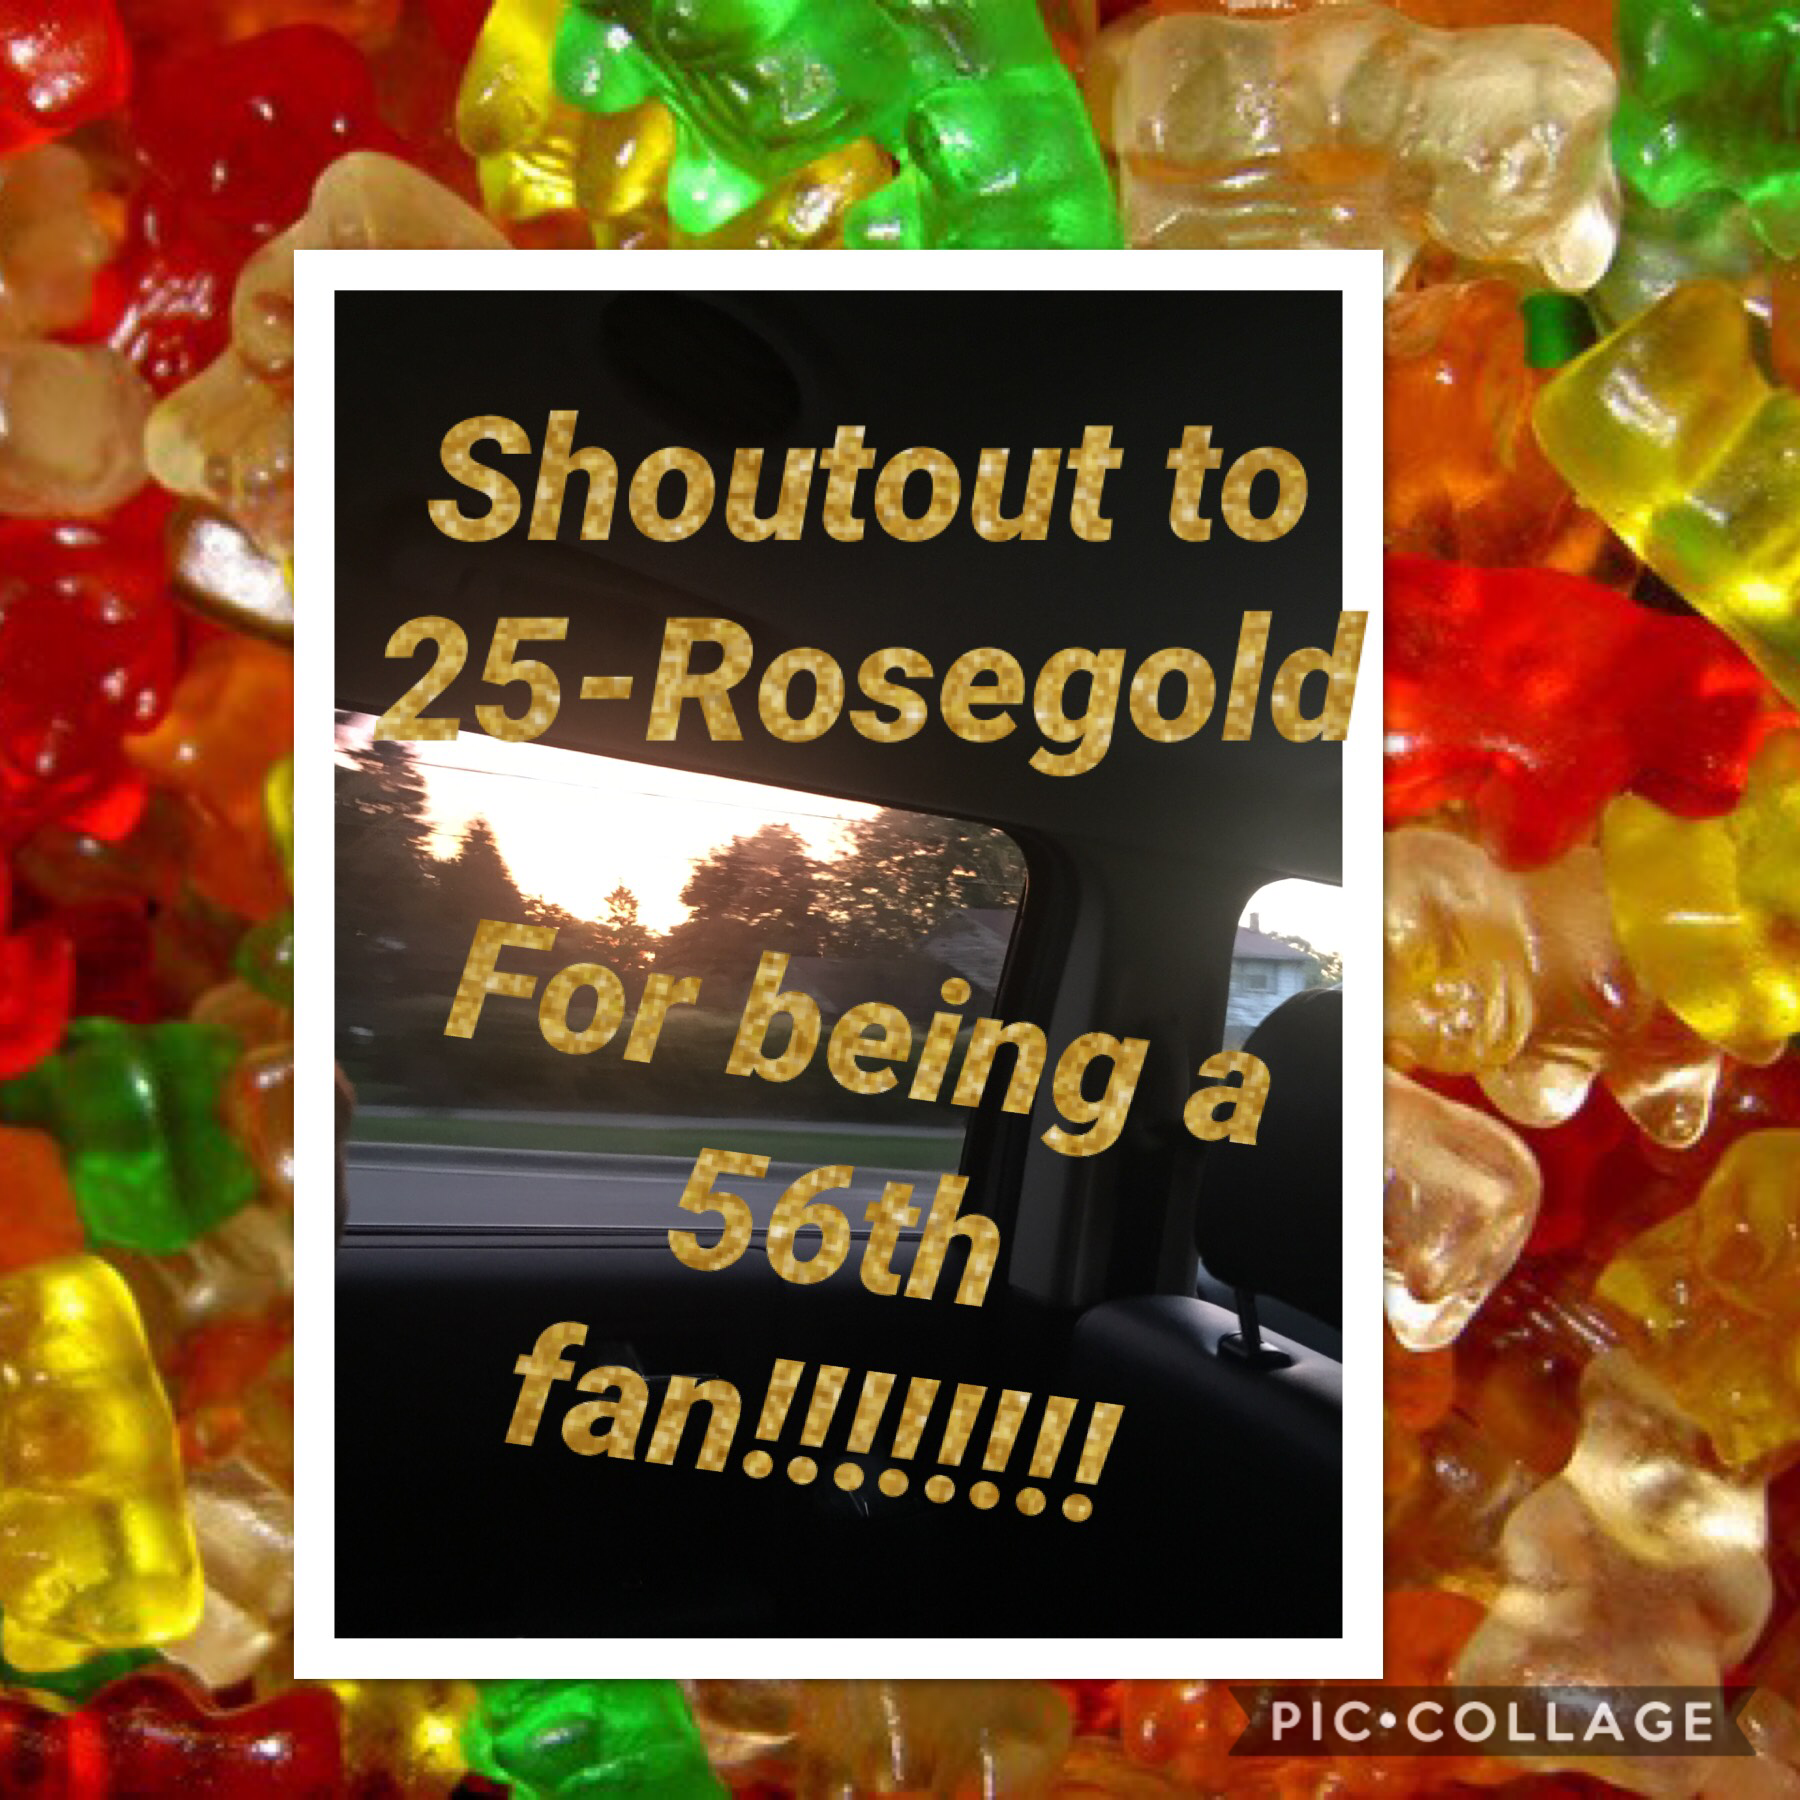 A shoutout to 25-Rosegold